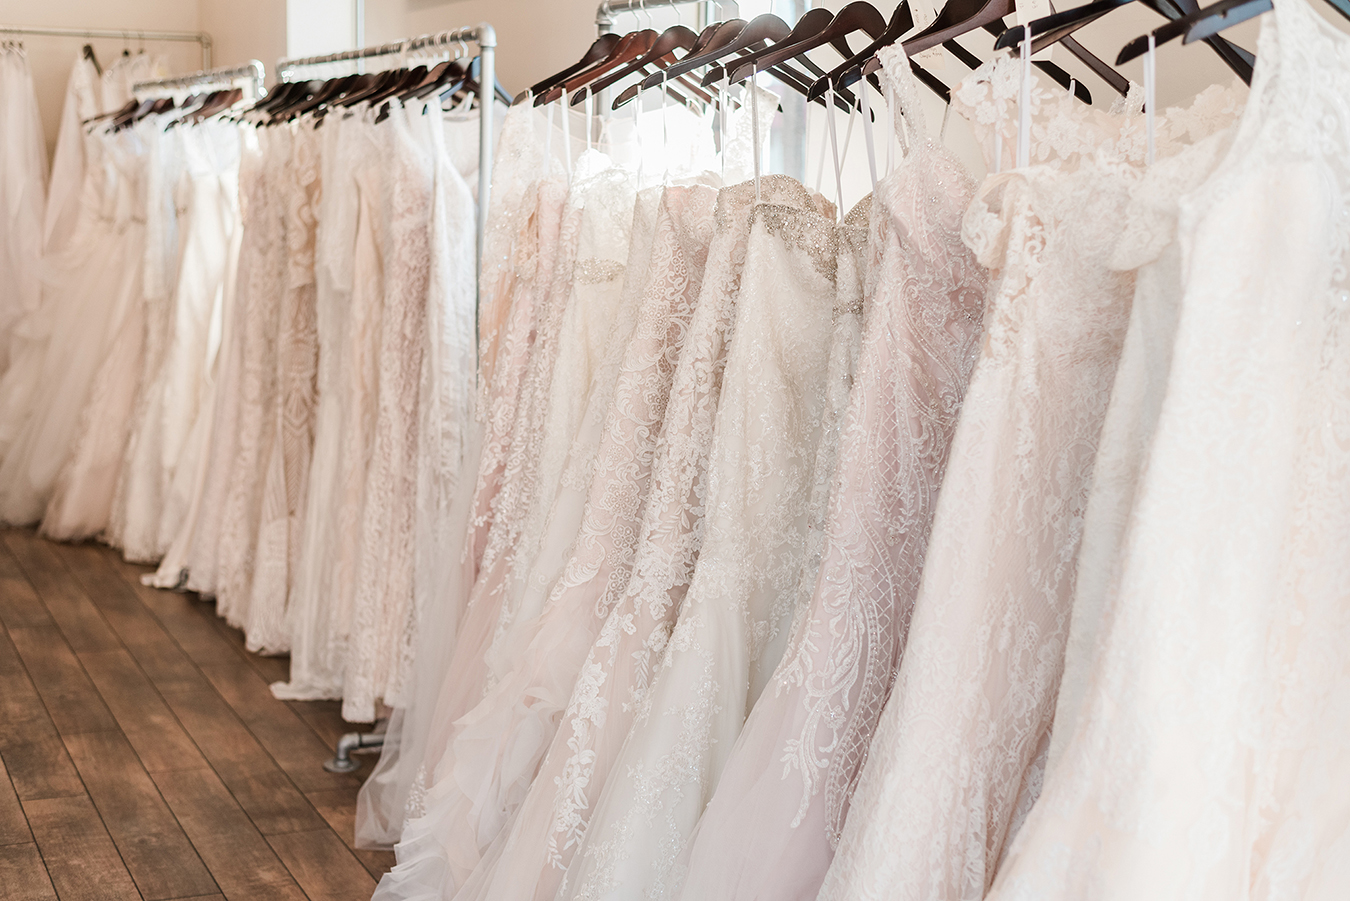 How to Prepare Before your Bridal Gown Appointment